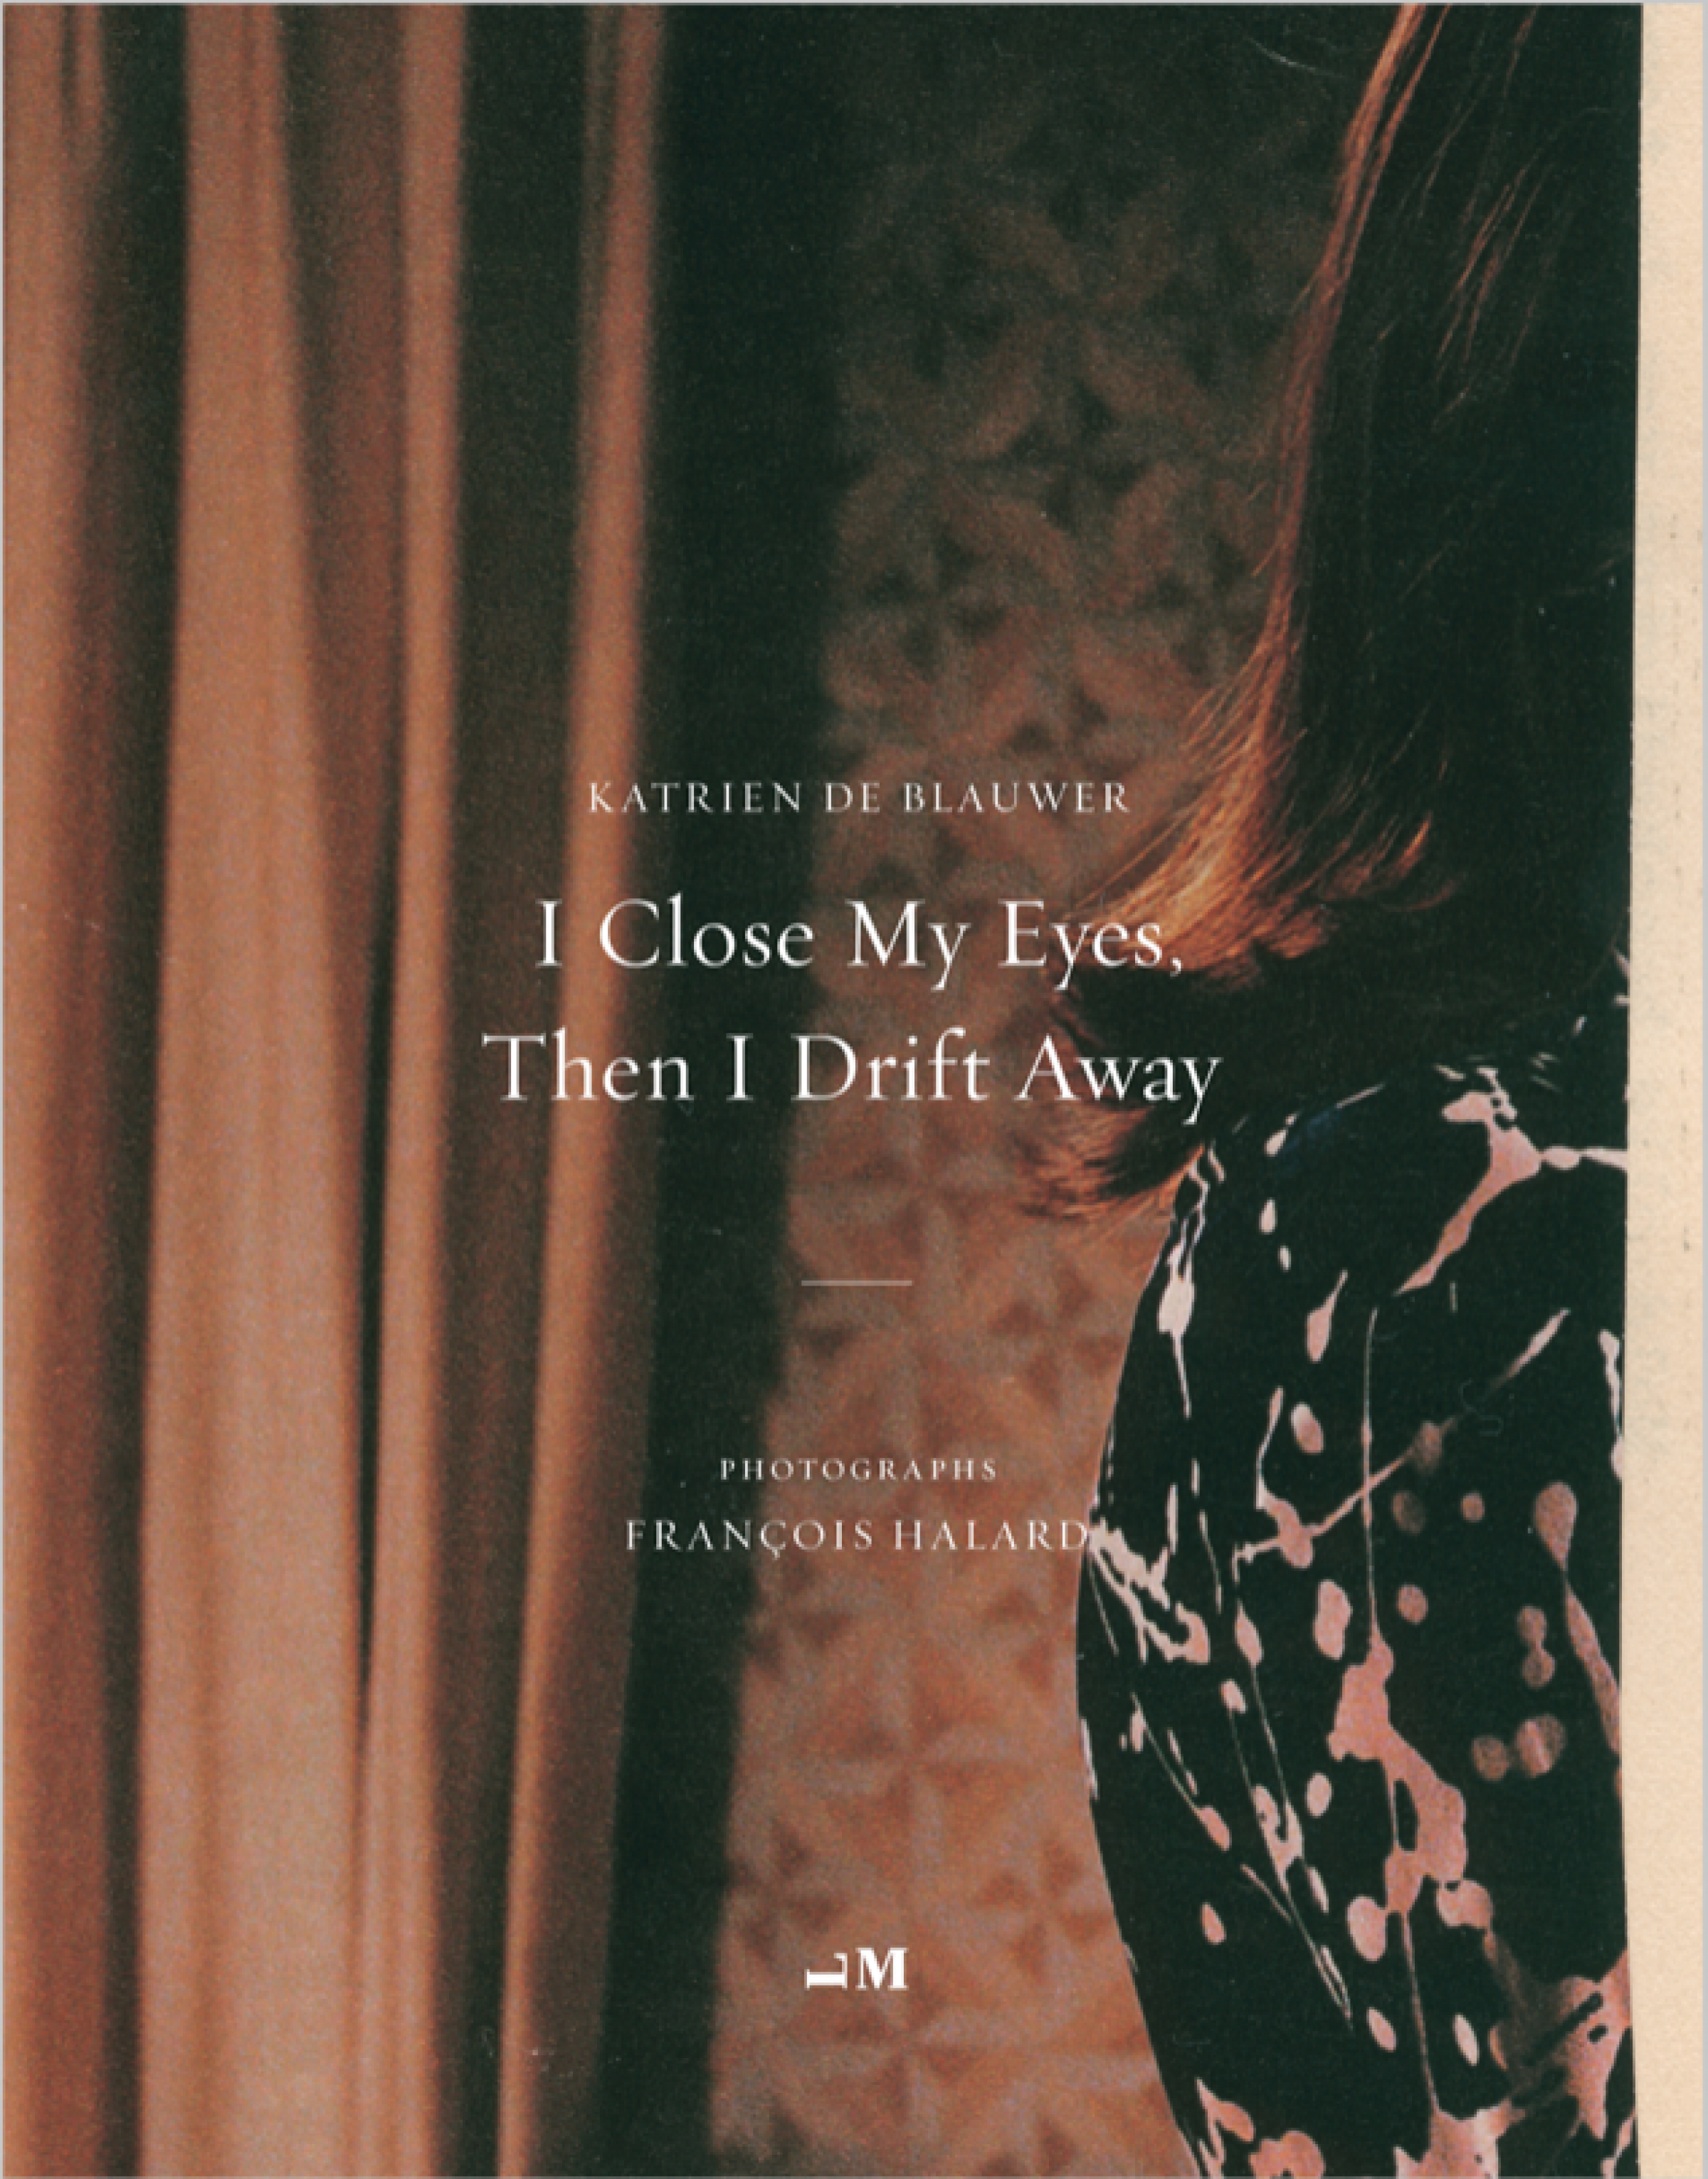 Katrien De Blauwer: I Close My Eyes, Then I Drift Away